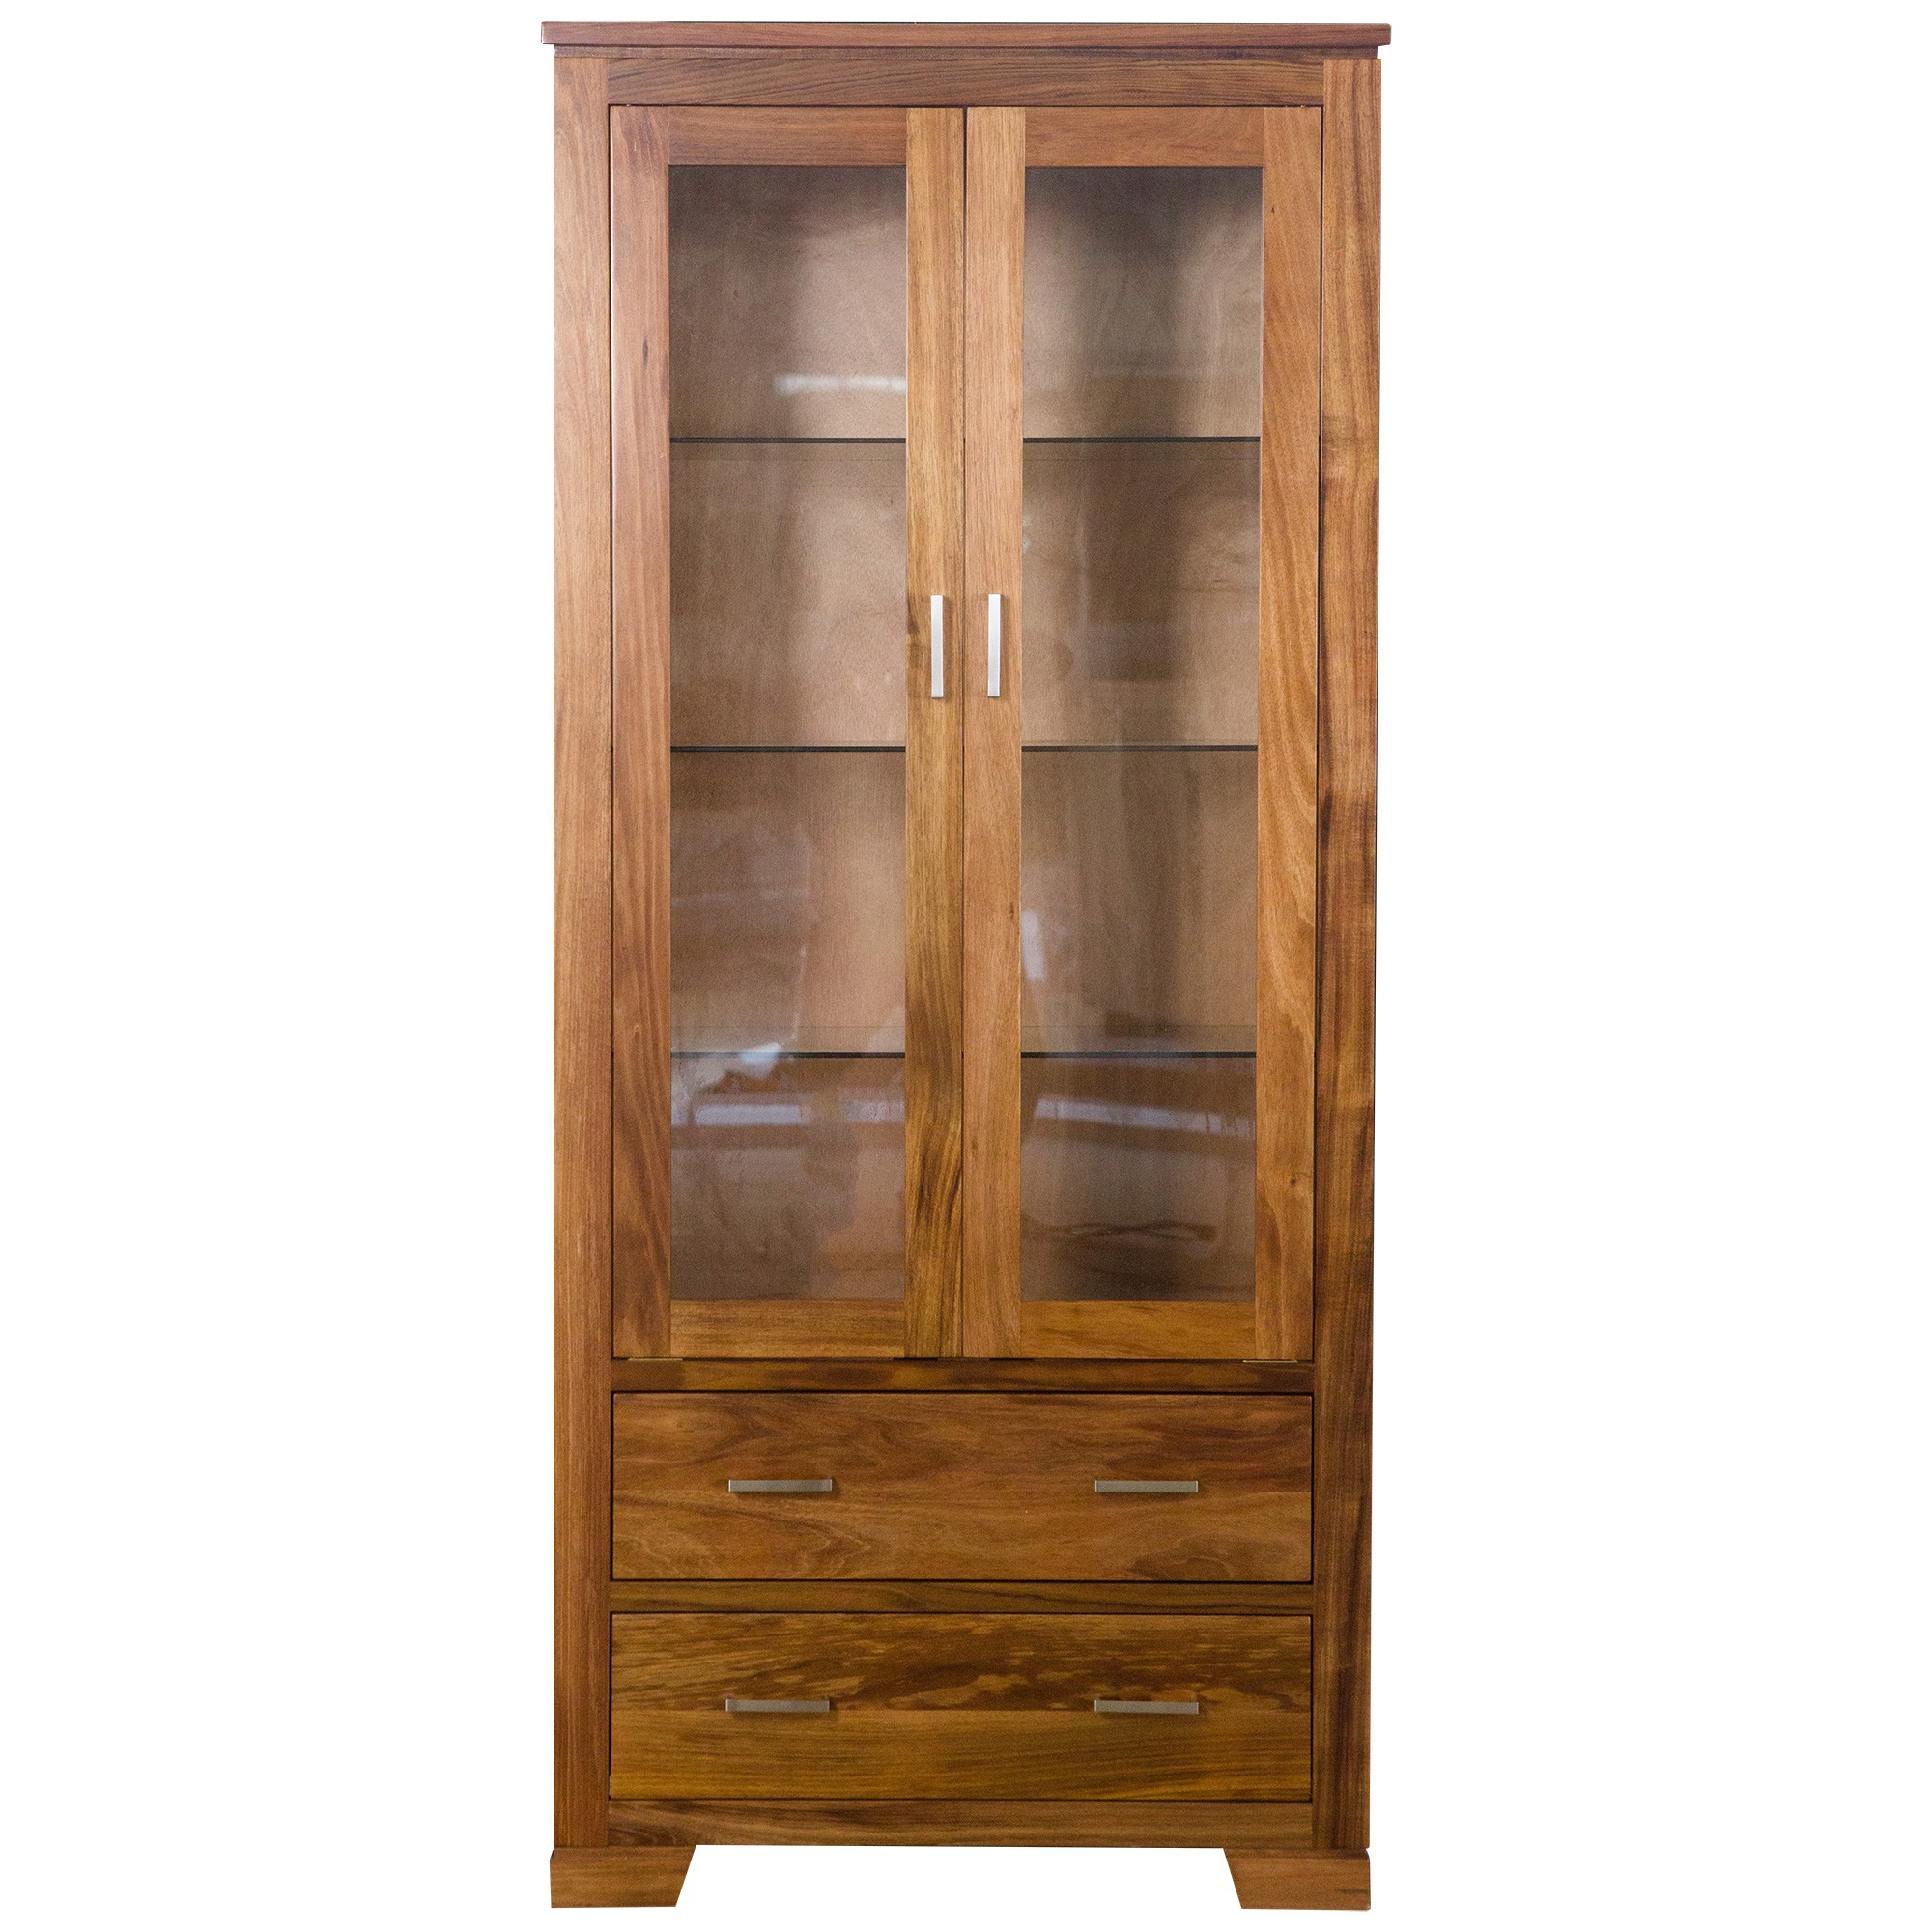 Harlington-II Blackwood Timber Display Cabinet